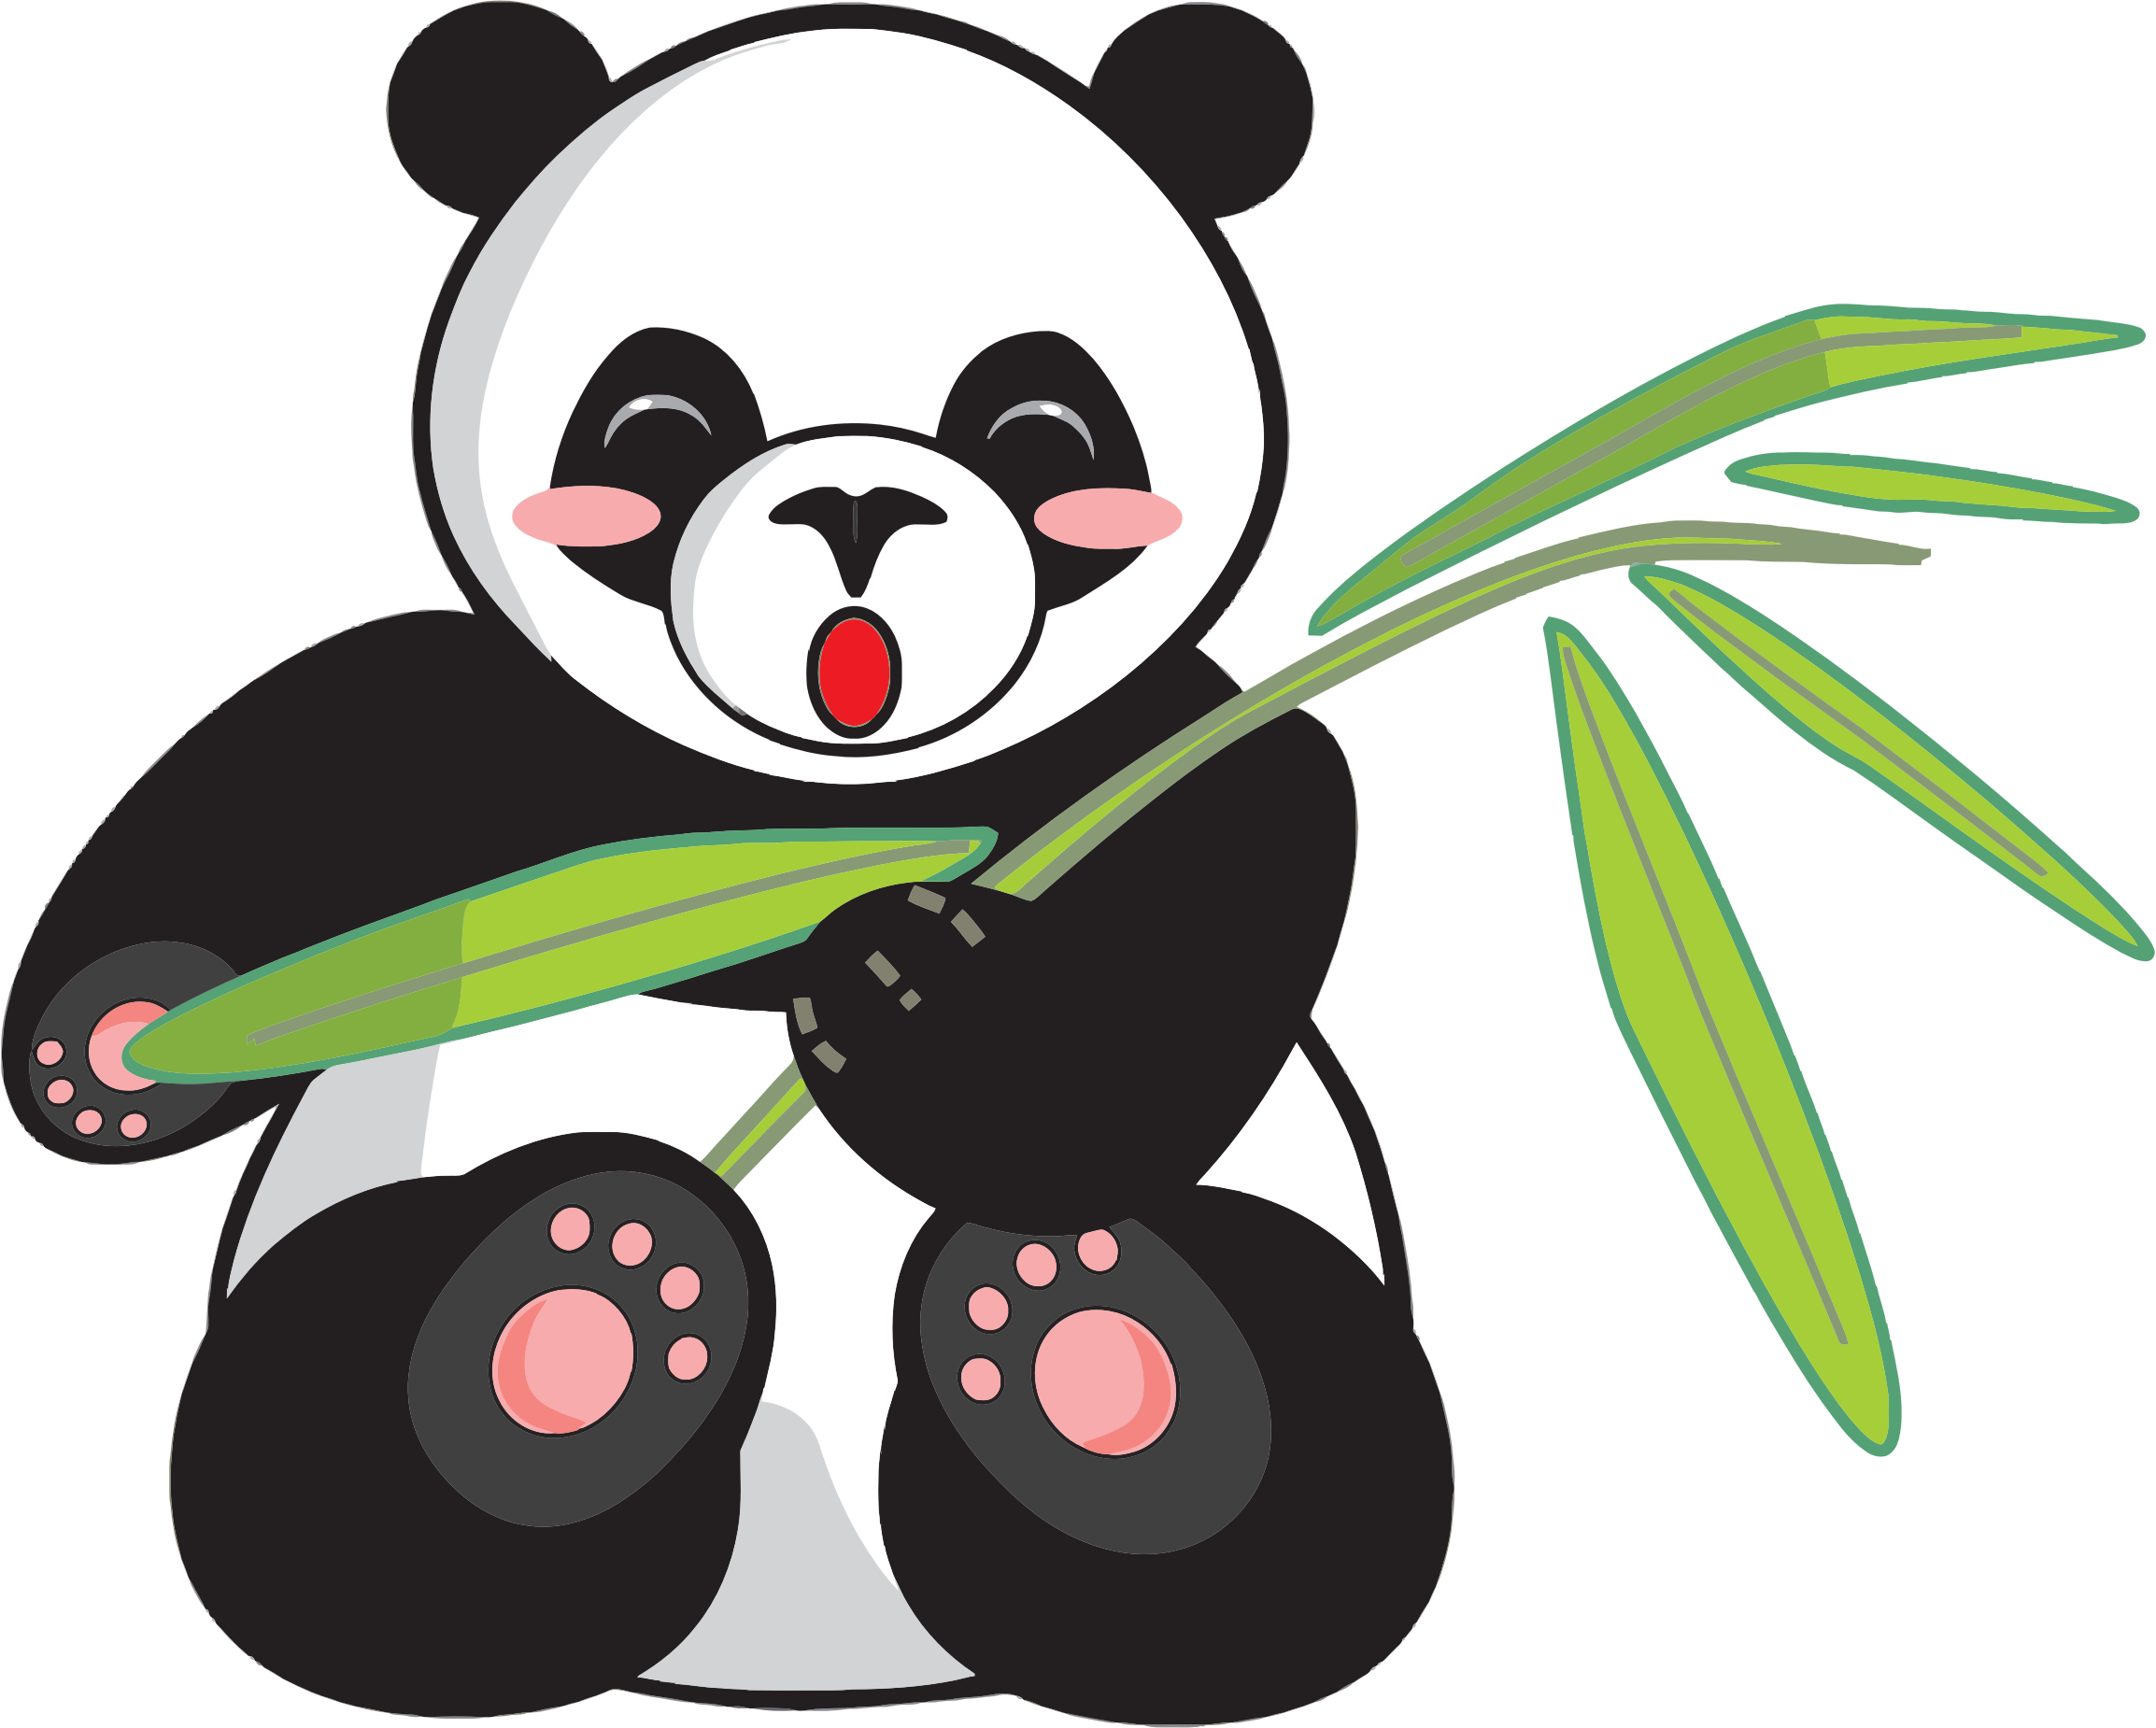 image black and white library Panda and icons png. Bamboo transparent cute cartoon